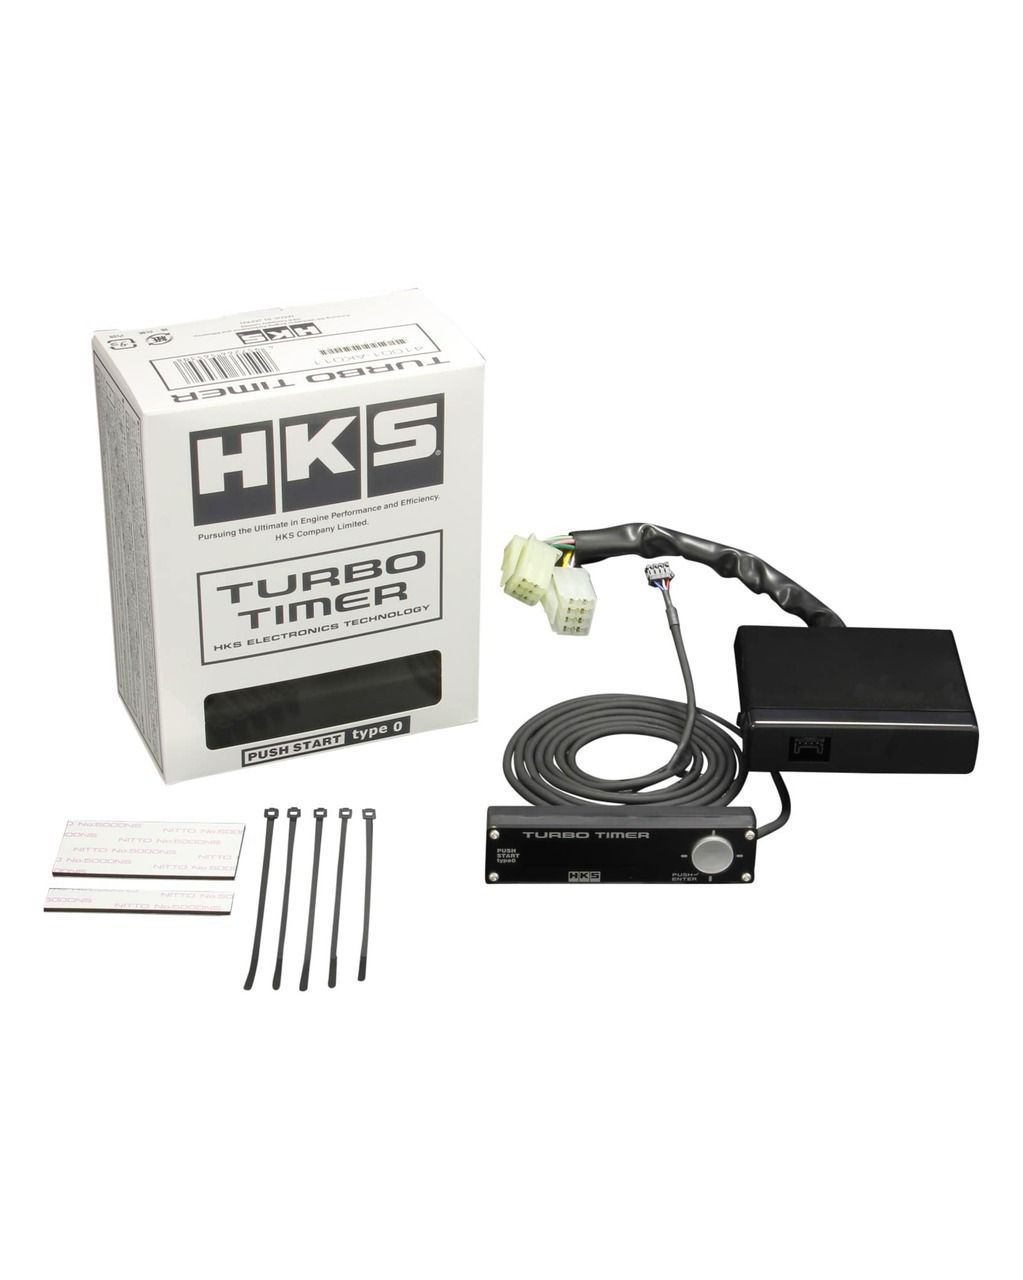 HKS Turbo Timer 9th type-0 Push Start Ignition